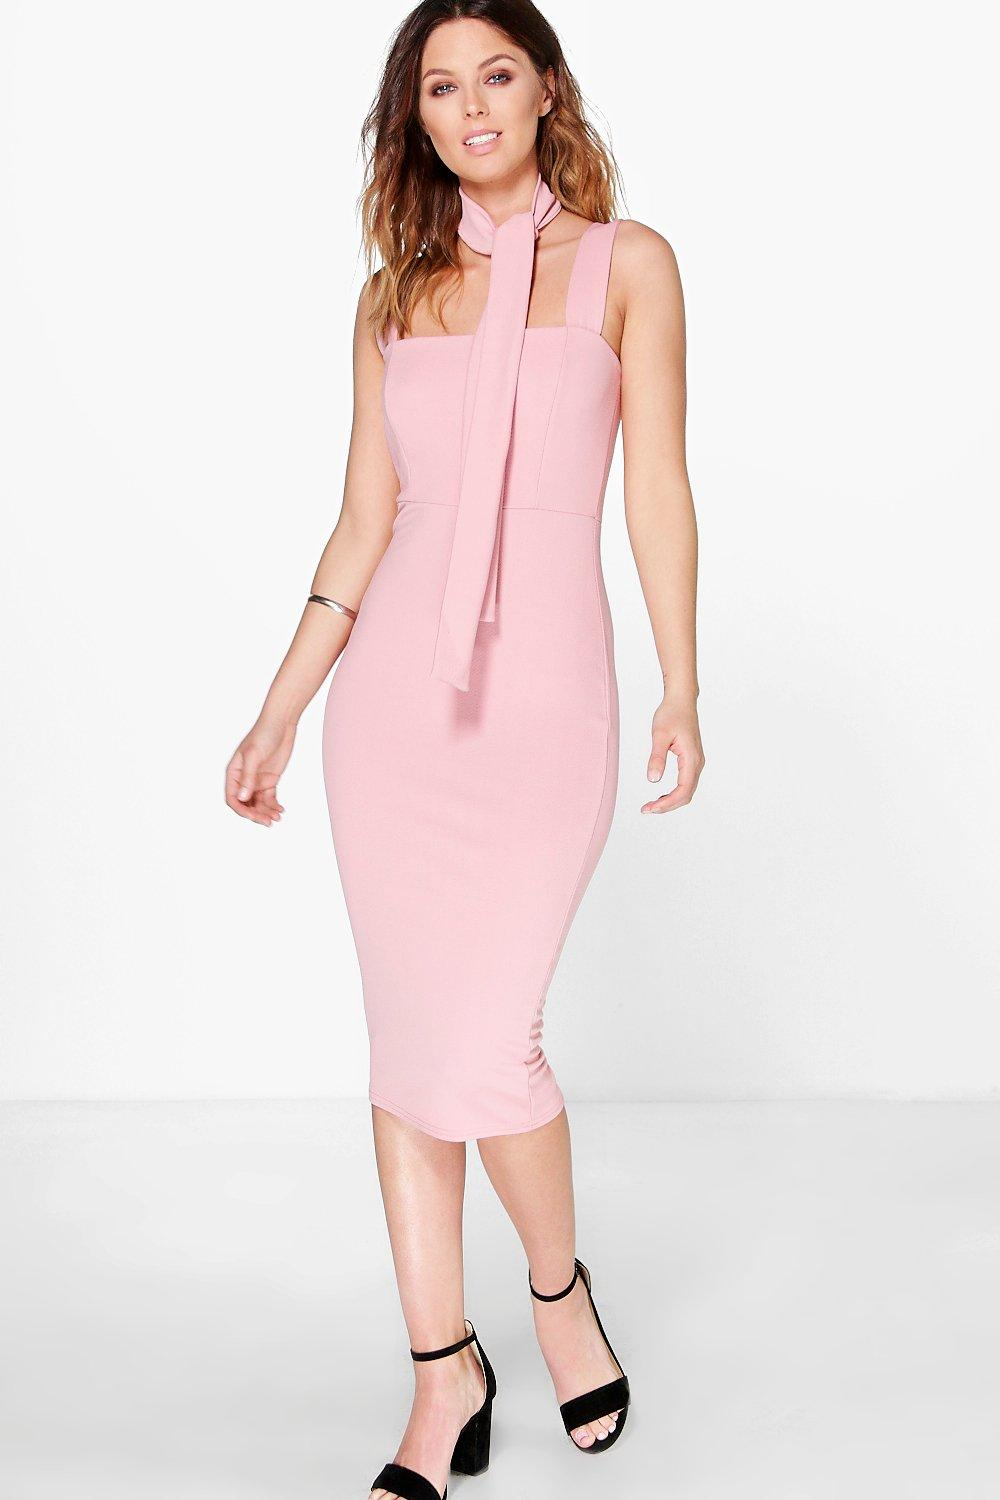 Elvira Neck Tie Detail Midi Dress